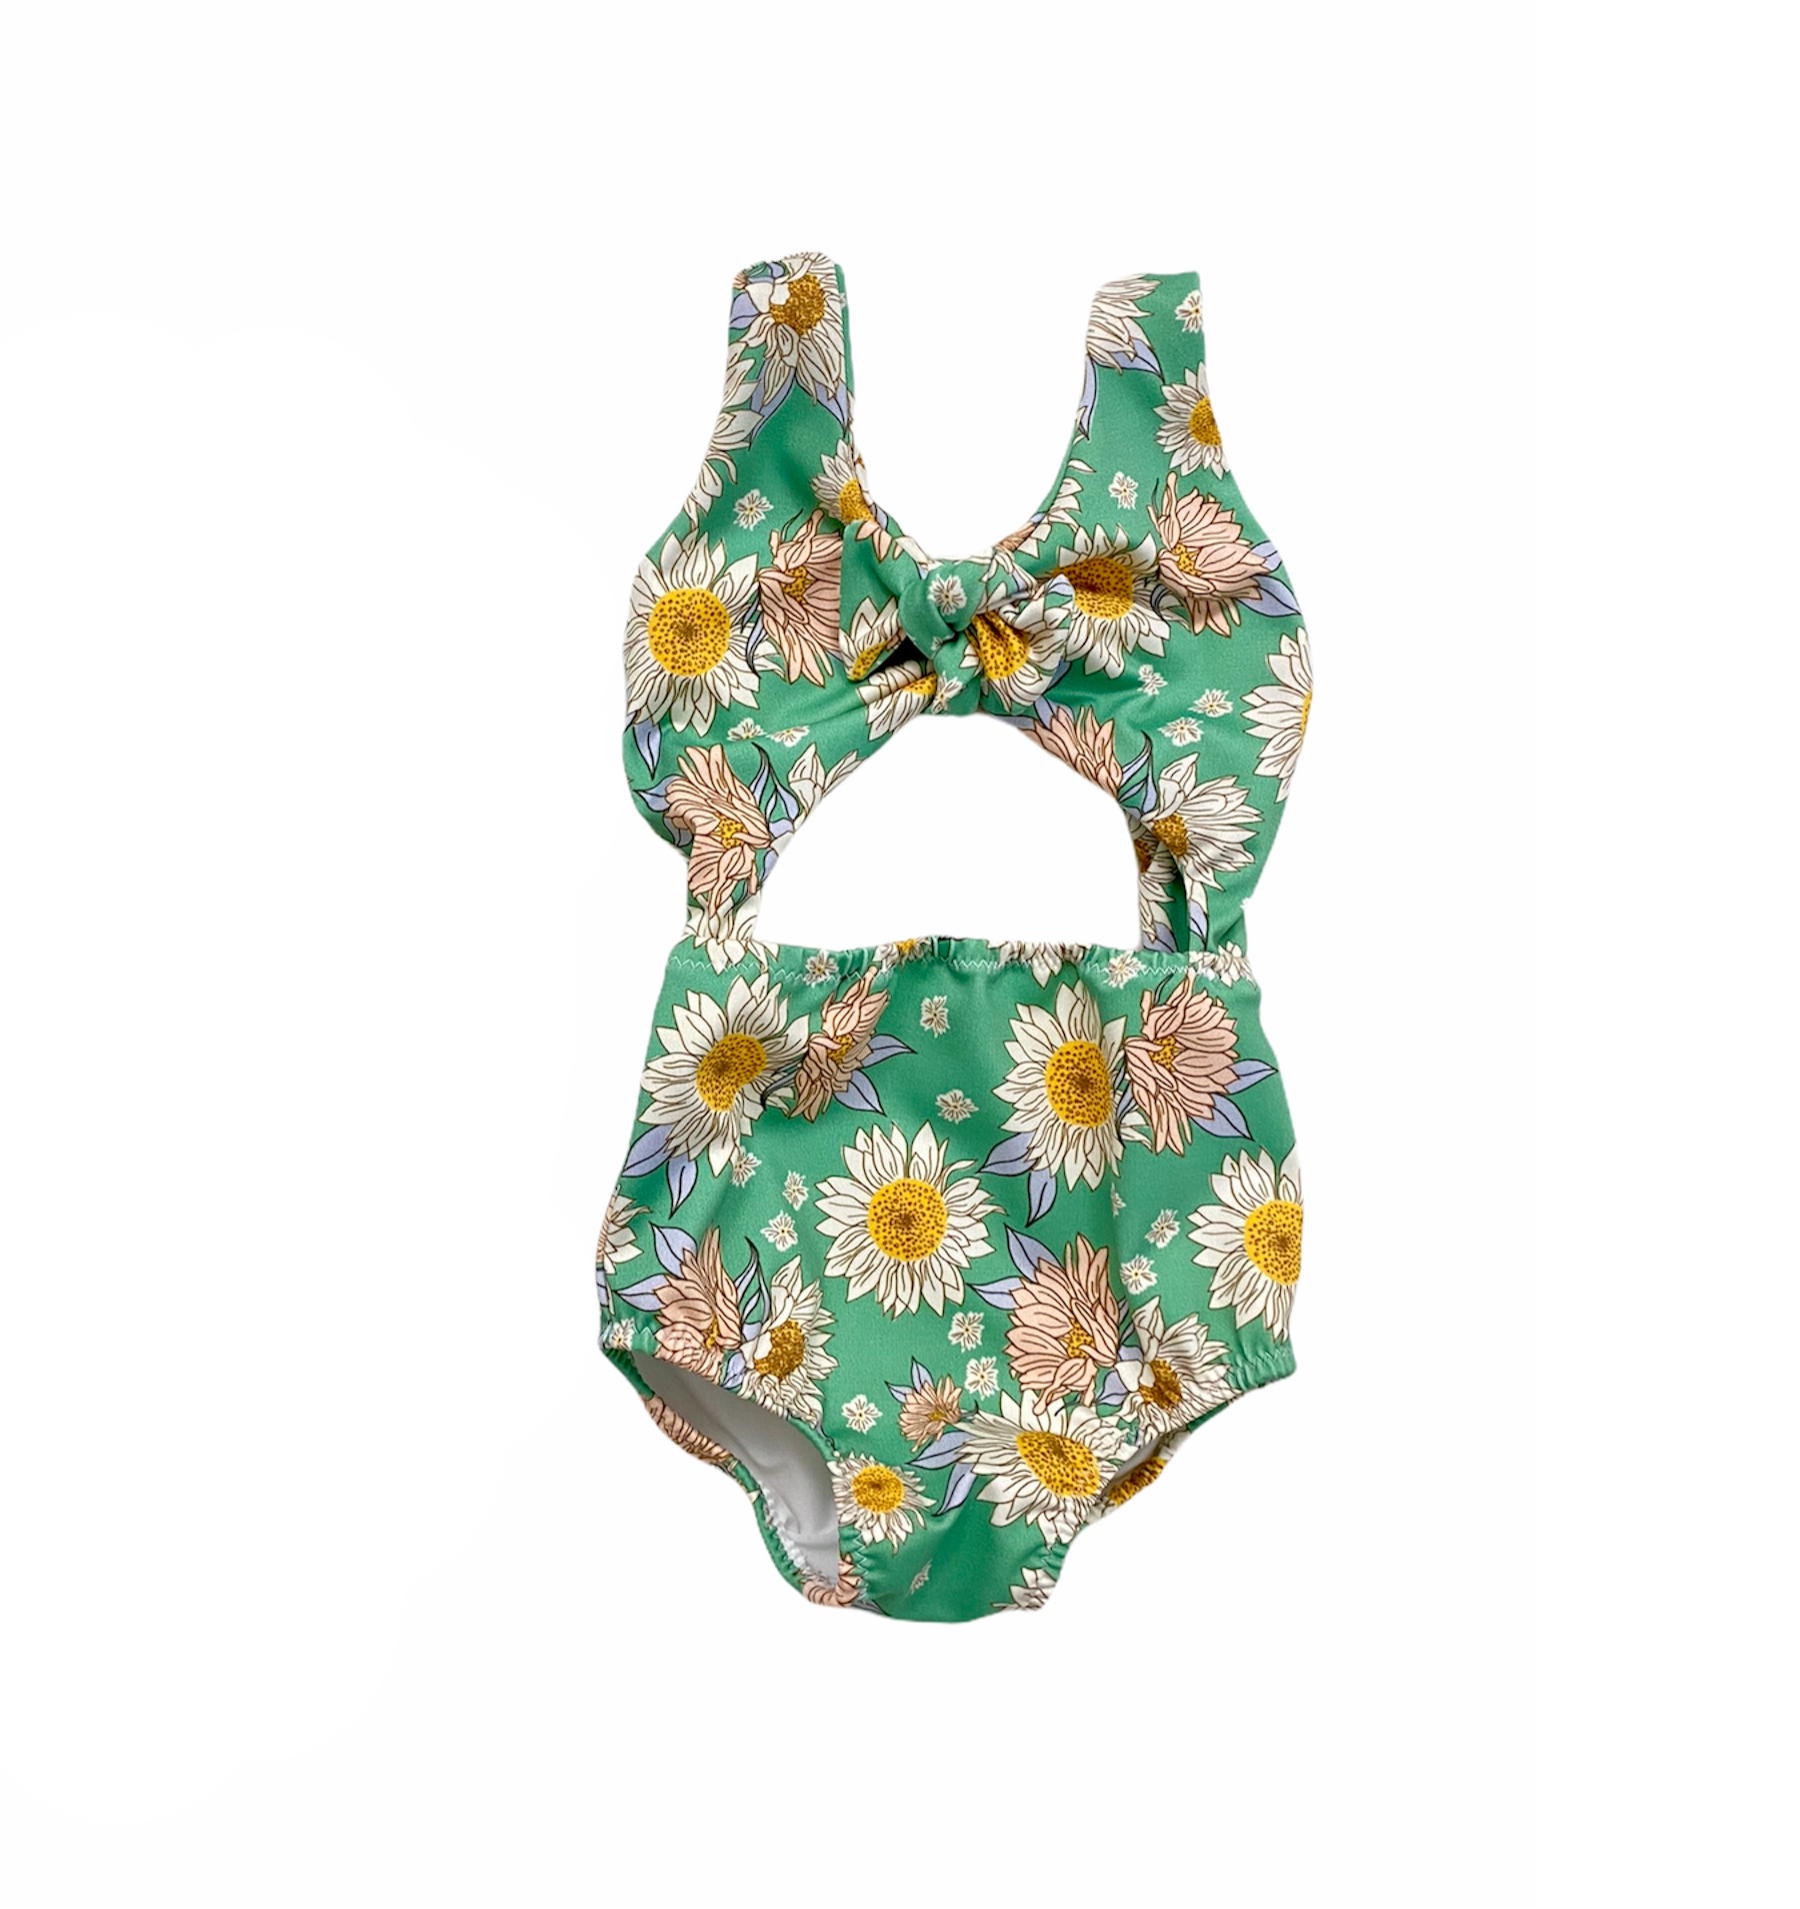 Mint Floral Peek-a-Boo One Piece Swimsuit